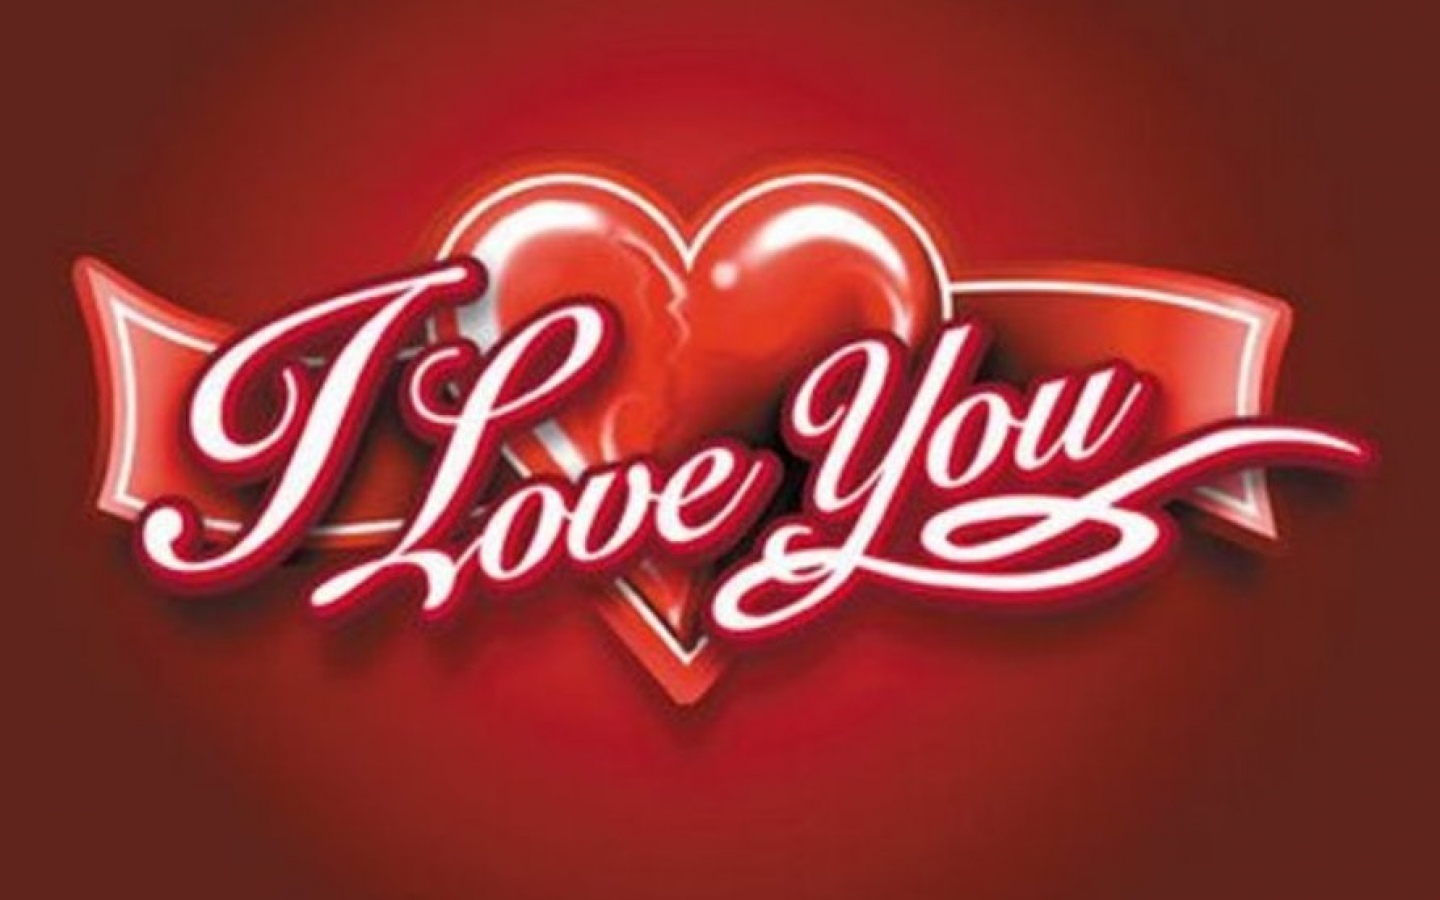 I love you sweetheart image